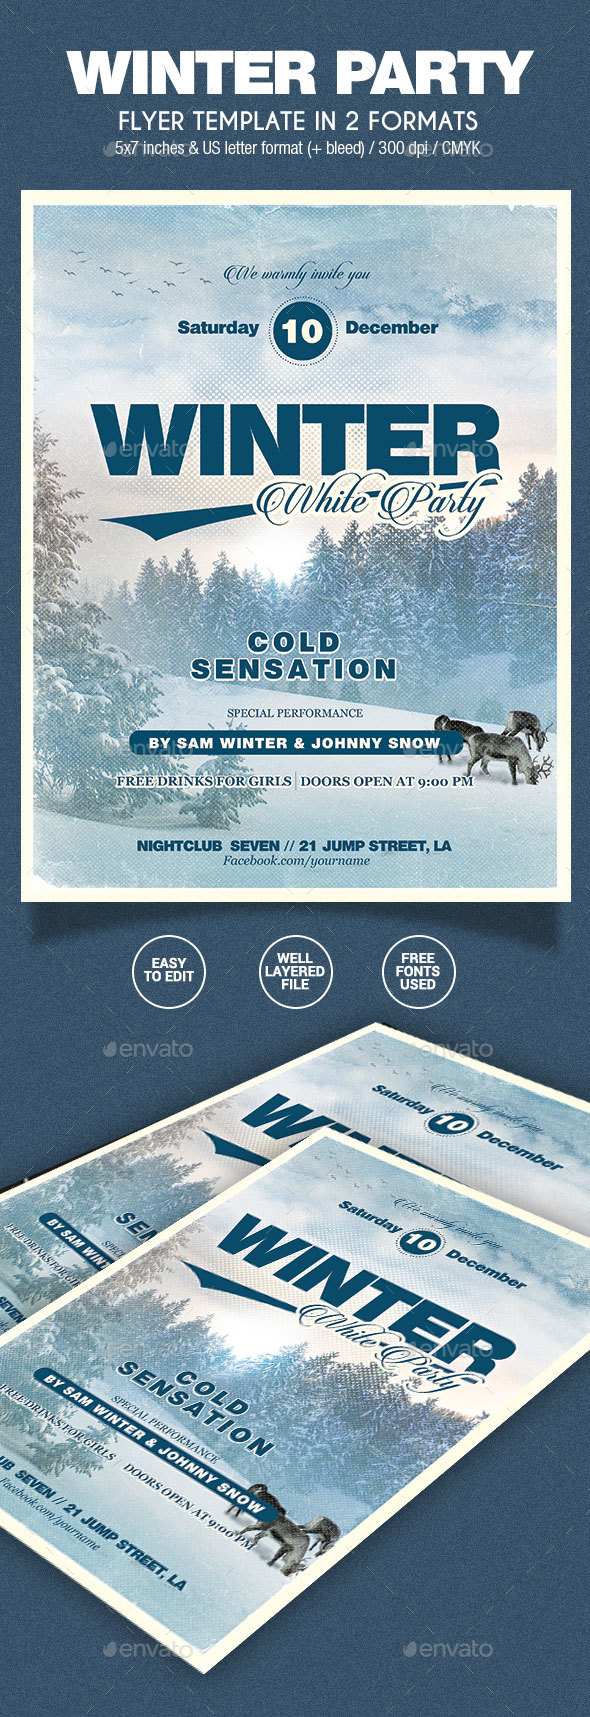 Winter Party Flyer - 2 Formats - Holidays Events